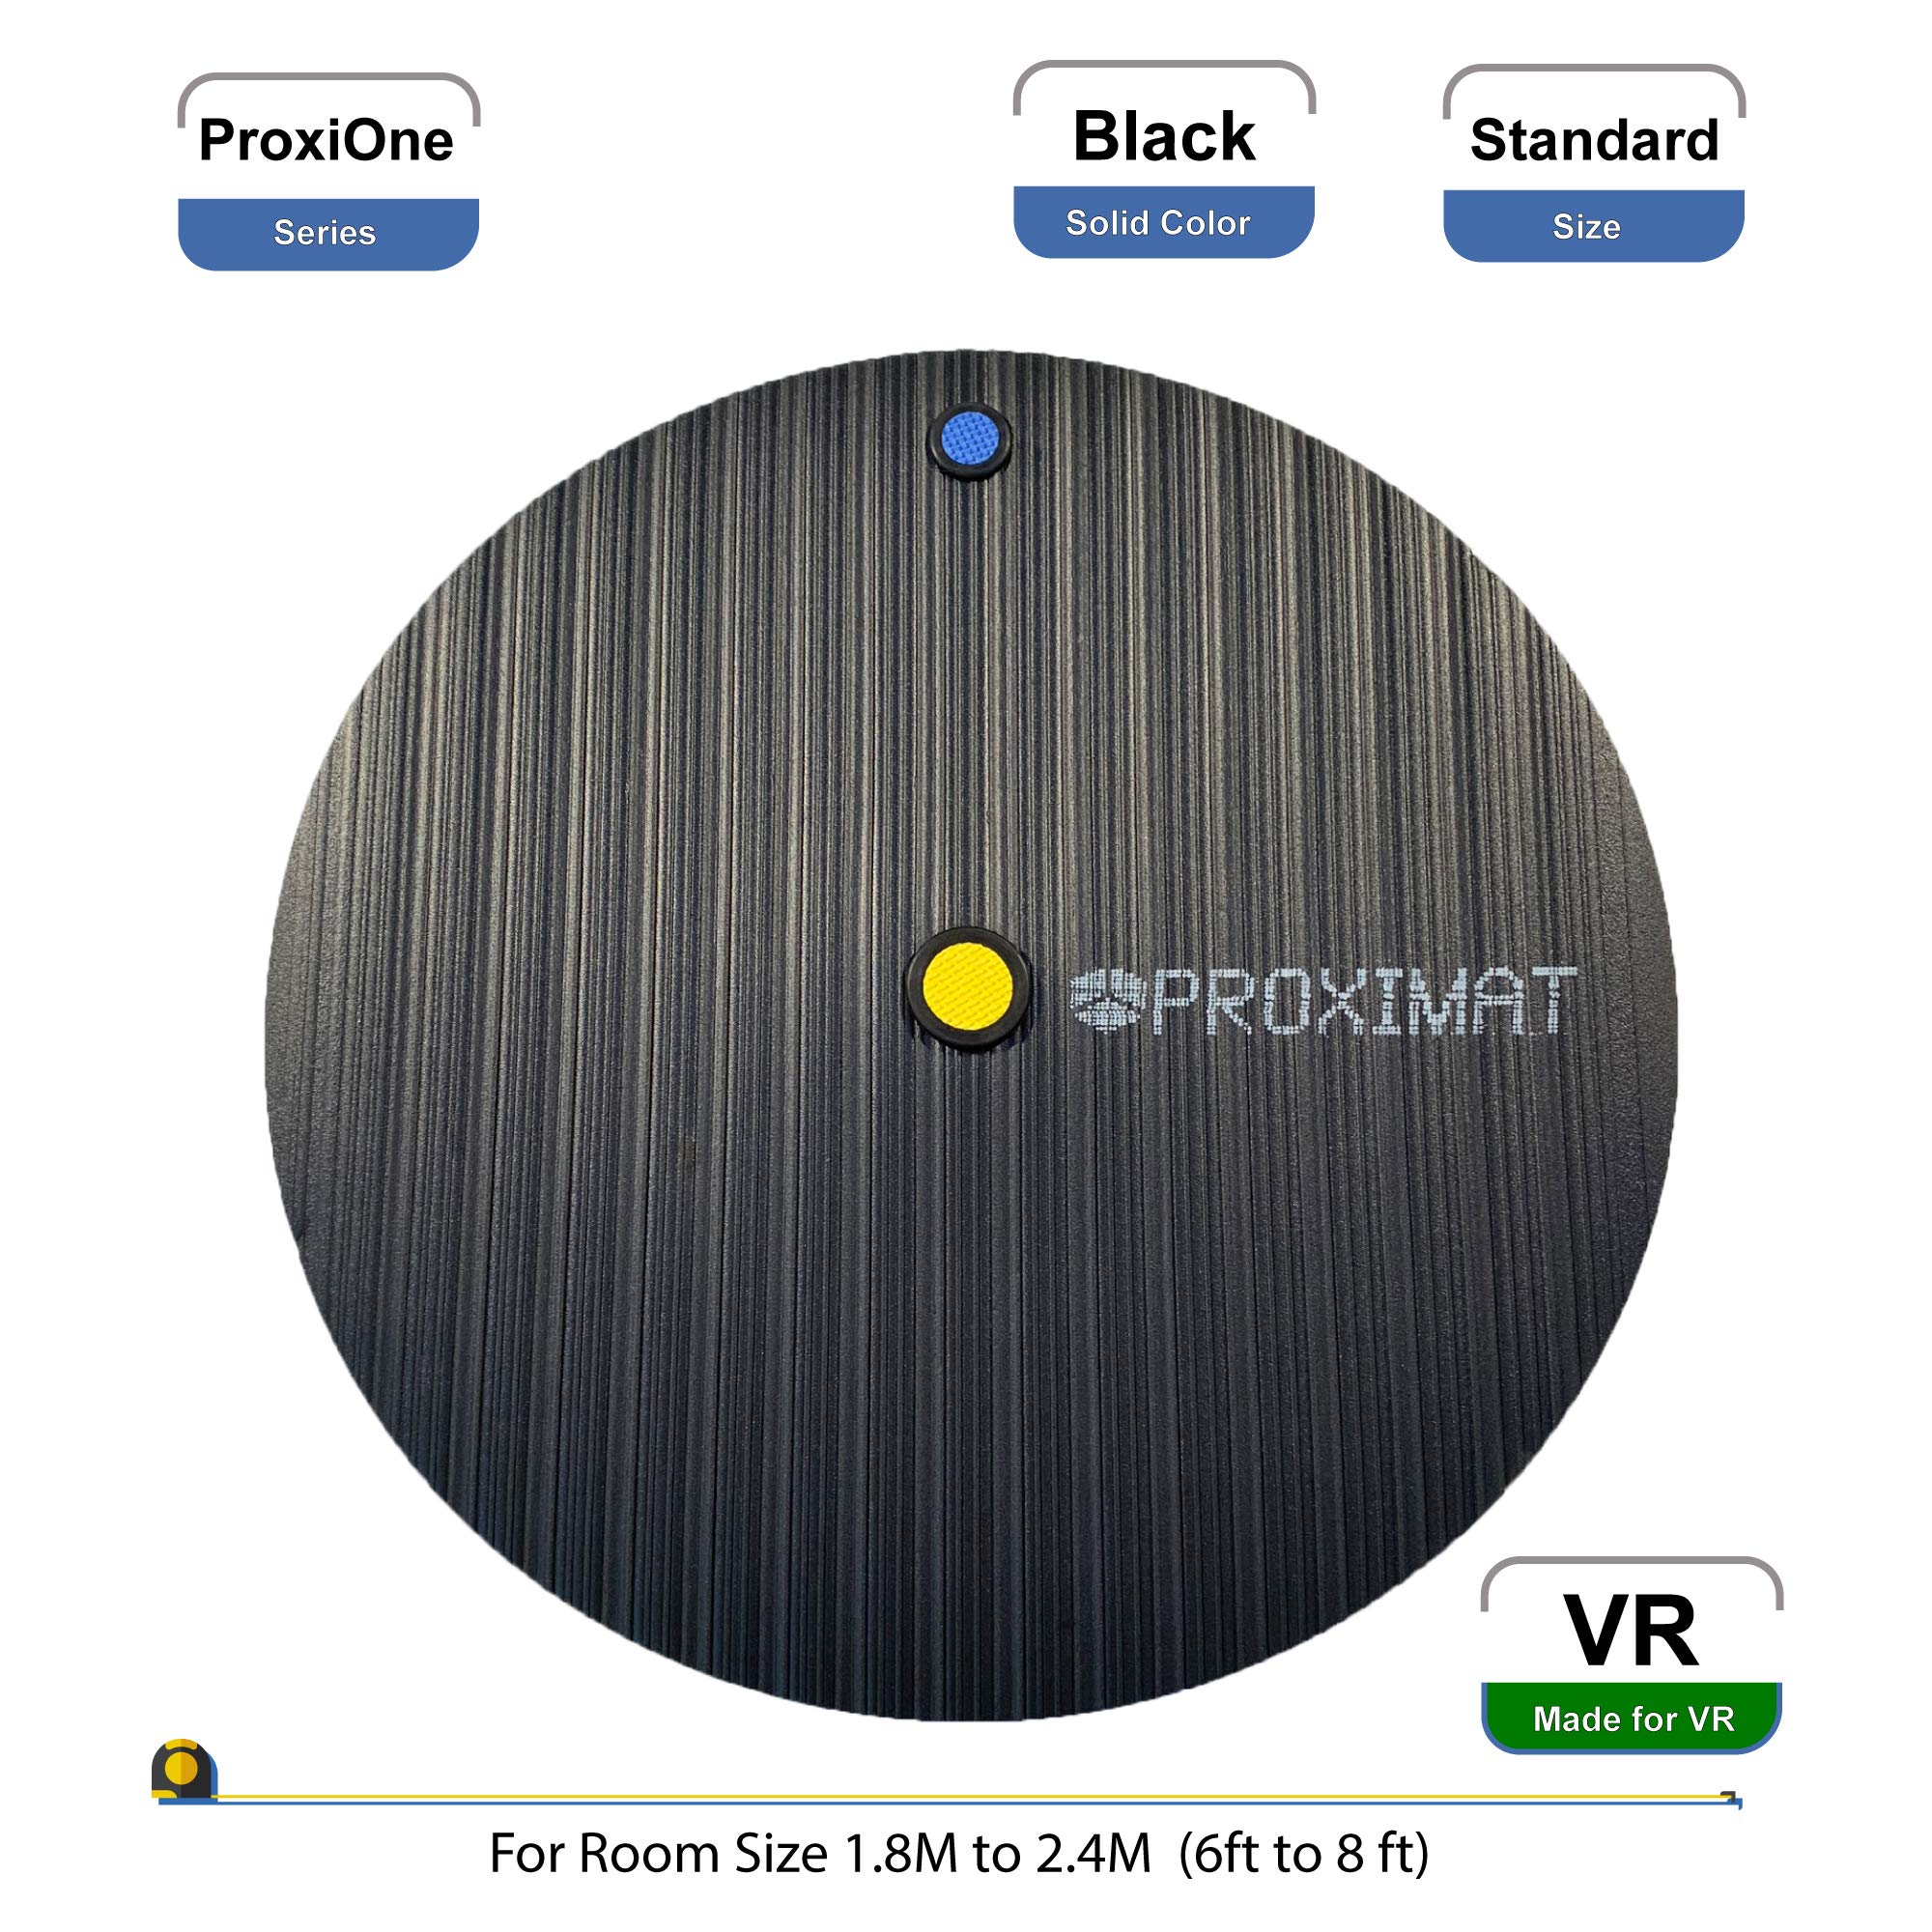 ProxiMat | ProxiOne | Black | Standard | VR Virtual Reality Chaperone Safety Mat | 6' to 8' Room Scale | for HTC Vive, Oculus Rift Quest, Playstation PSVR, Pimax 5K 8K, Valve Index Headset ... by Proximat